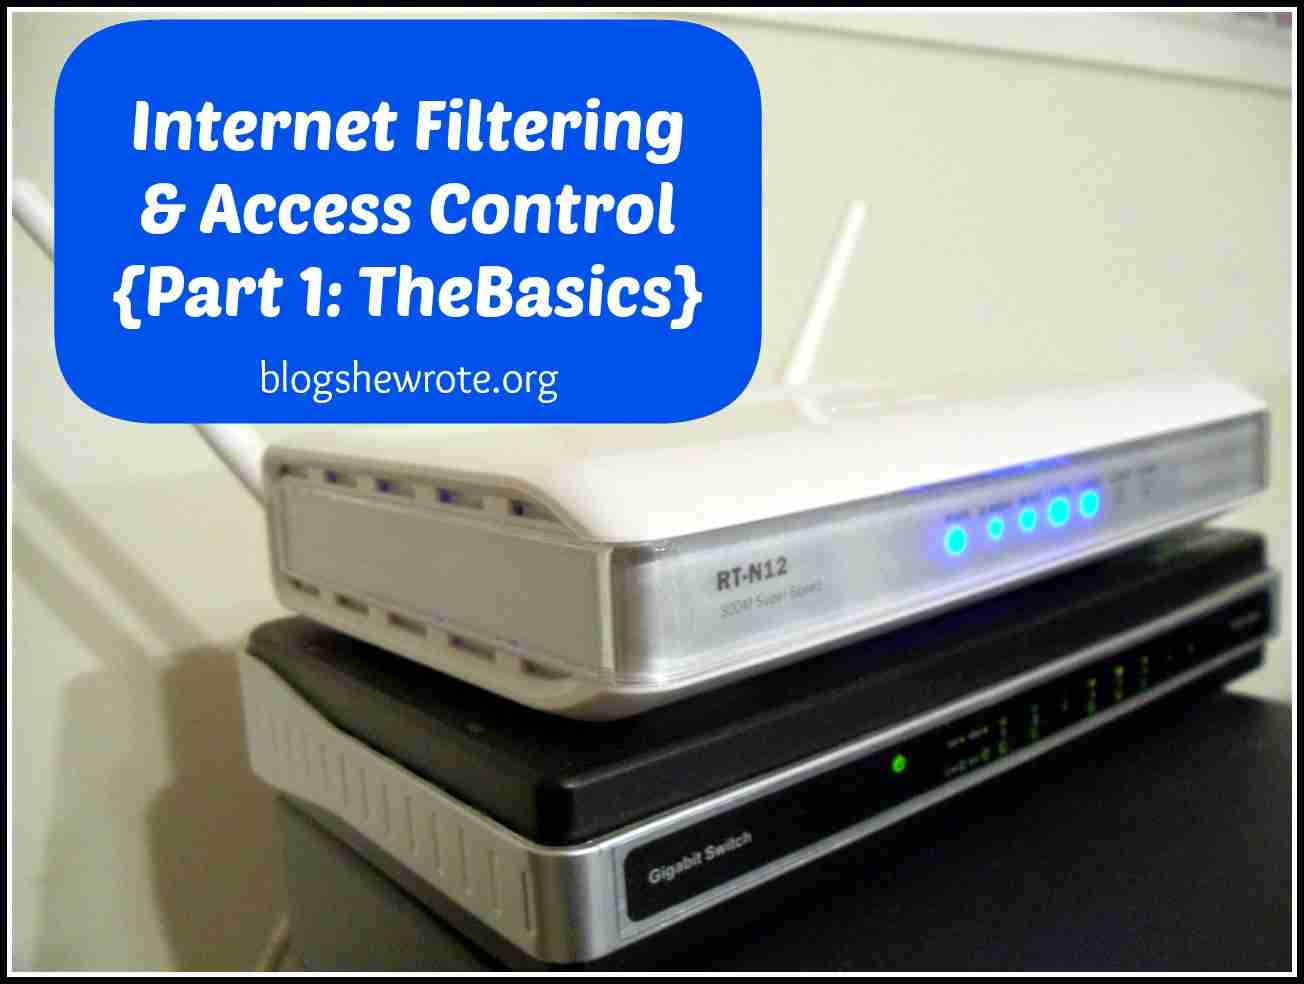 Blog, She Wrote: Managing the Internet in Your Home